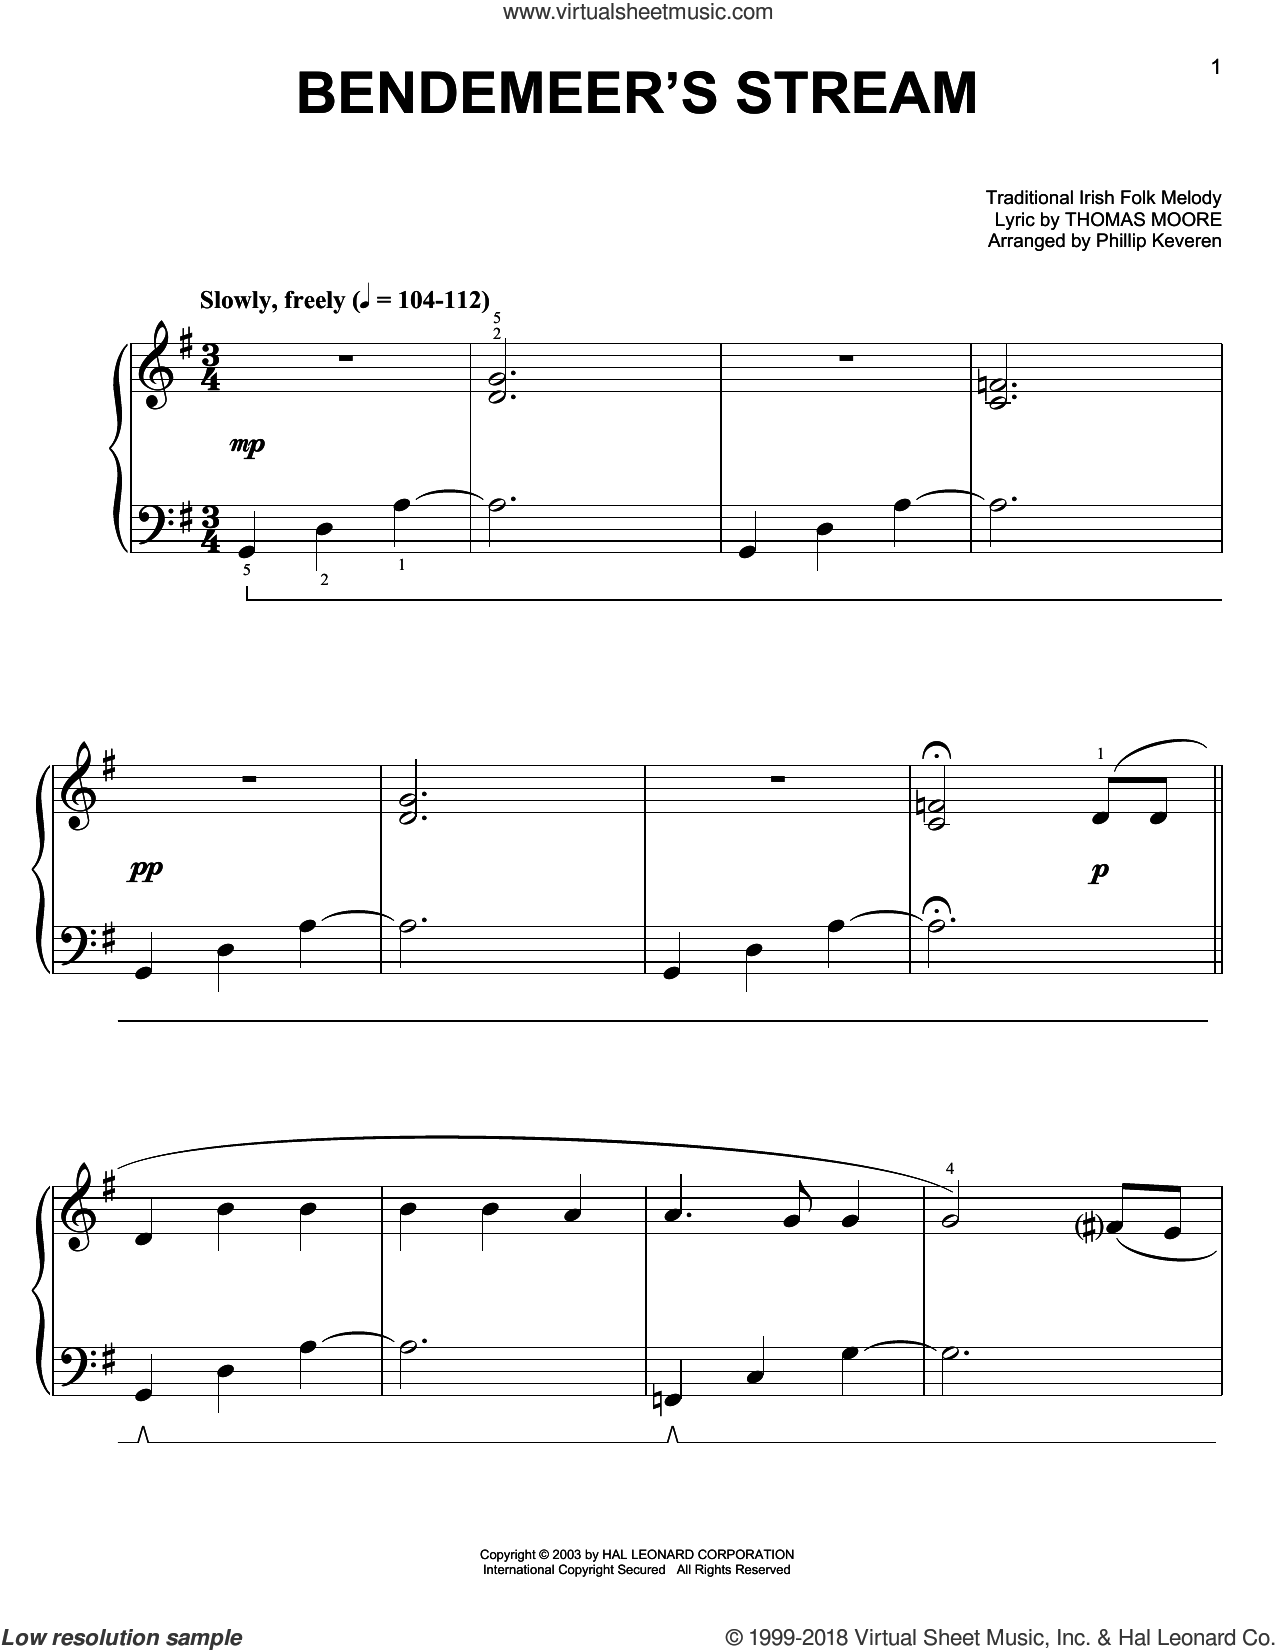 Bendemeer's Stream sheet music for piano solo , Phillip Keveren and Thomas Moore. Score Image Preview.